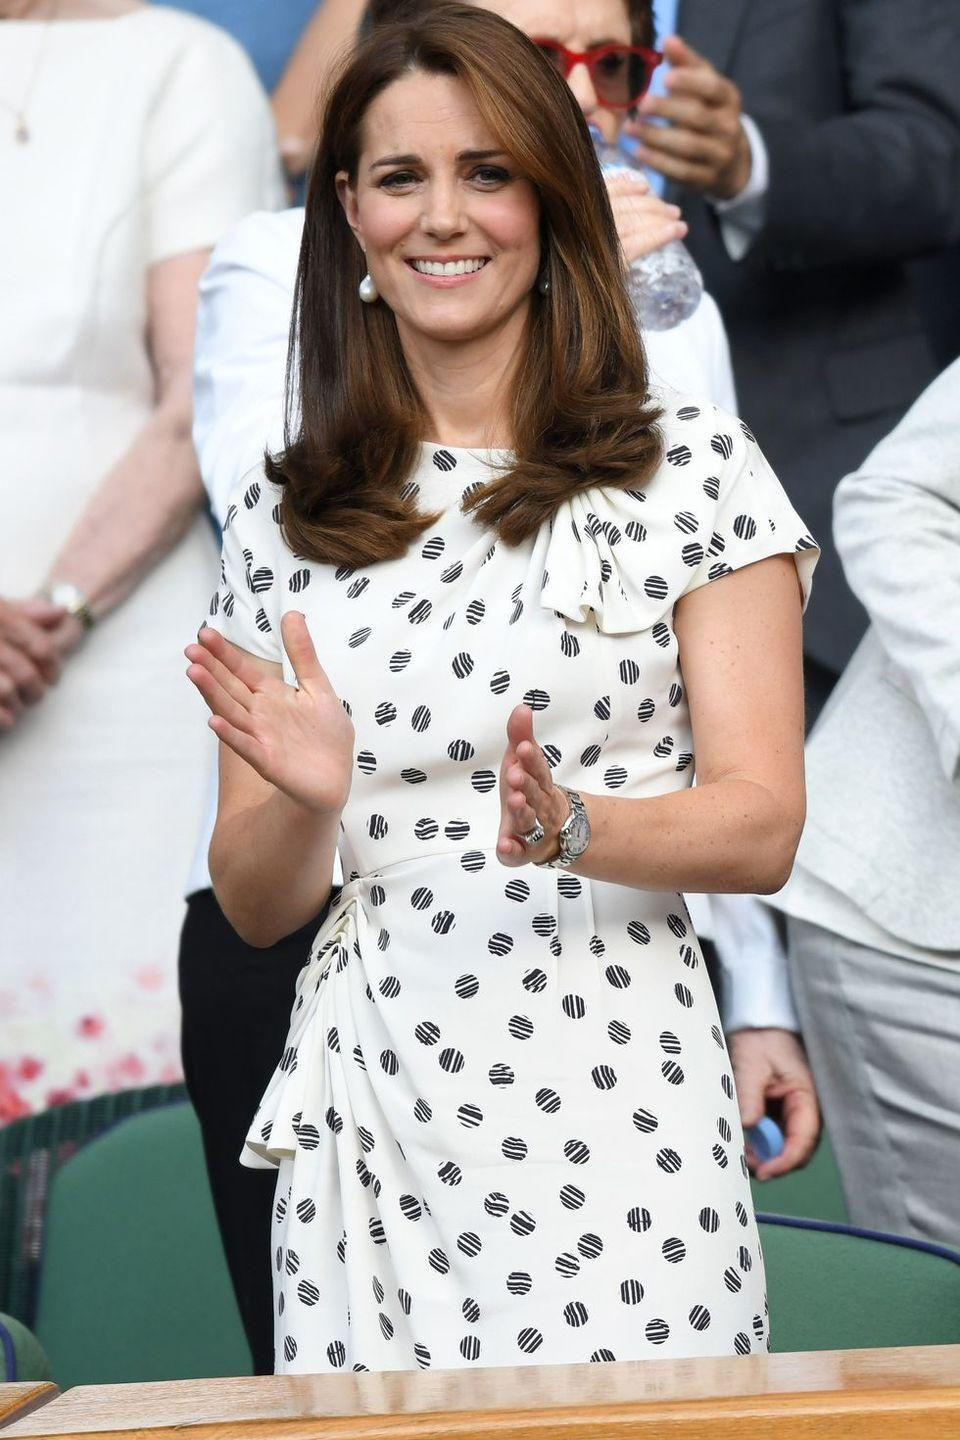 <p>Kate Middleton joined Meghan Markle for Serena Williams' Wimbledon match, choosing a printed dress by Jenny Packham and pearl earrings for the occasion. </p>